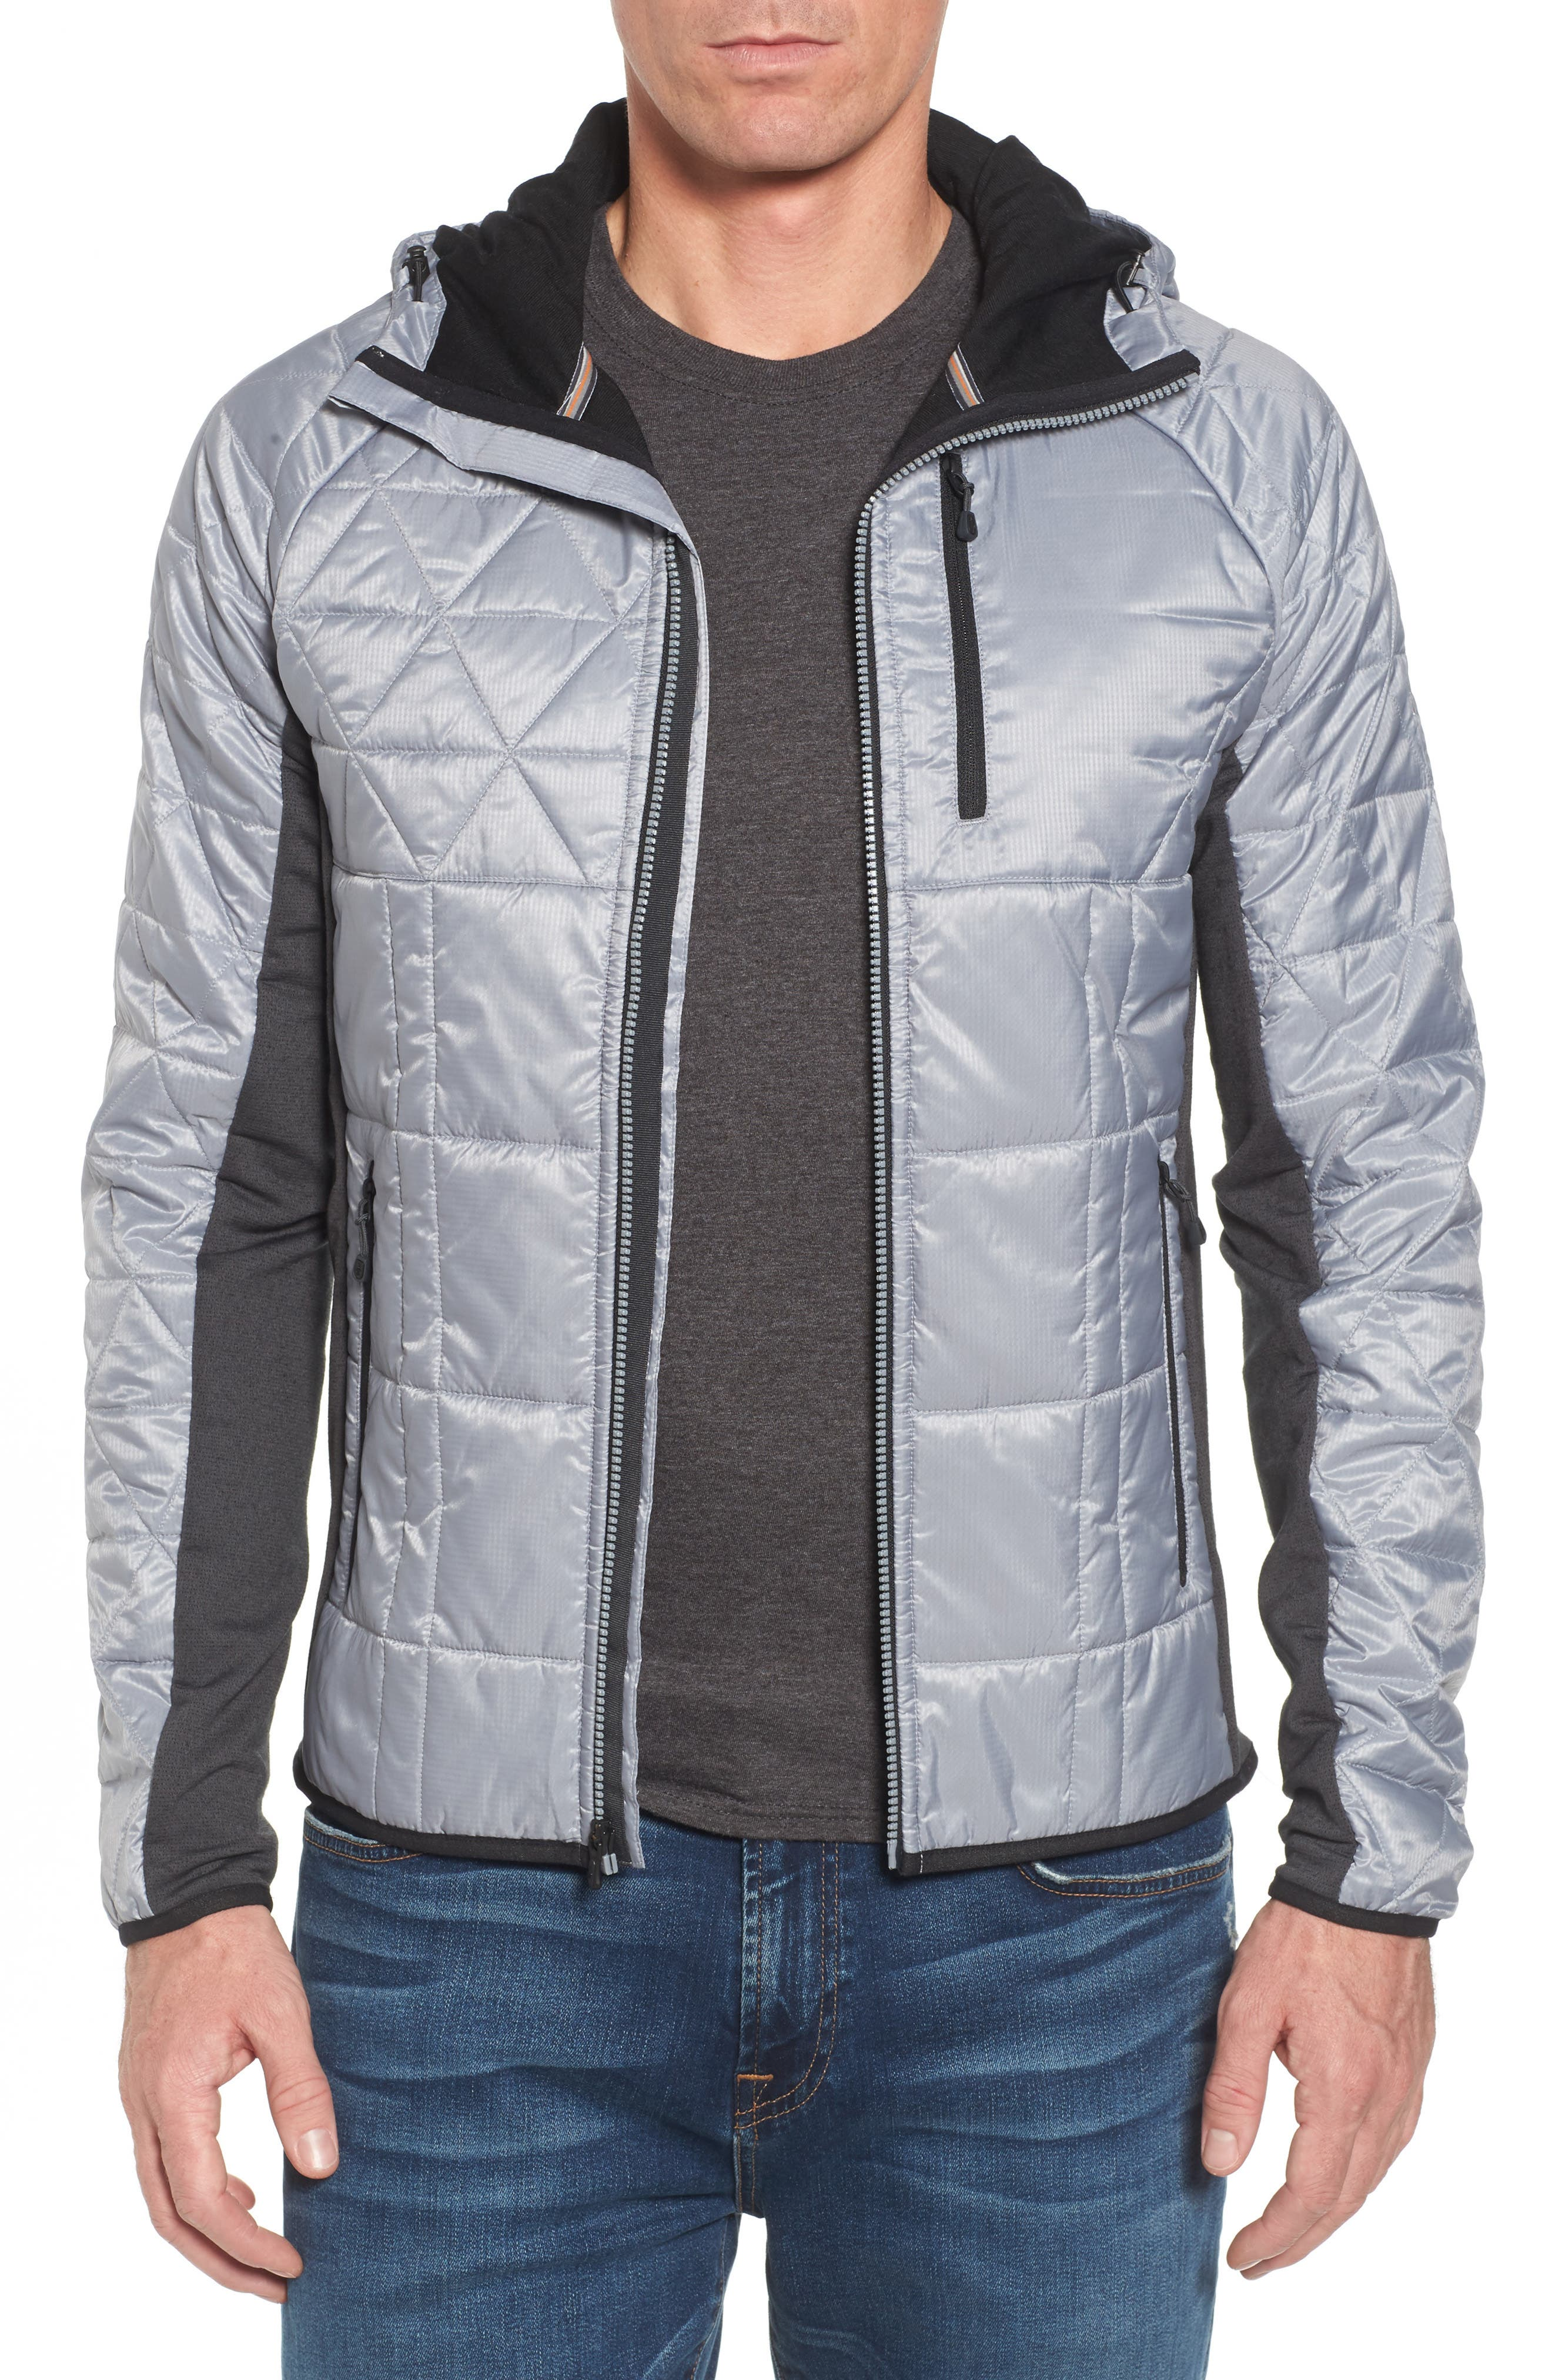 Main Image - Smartwool Double Corbet 120 Water Resistant Quilted Jacket